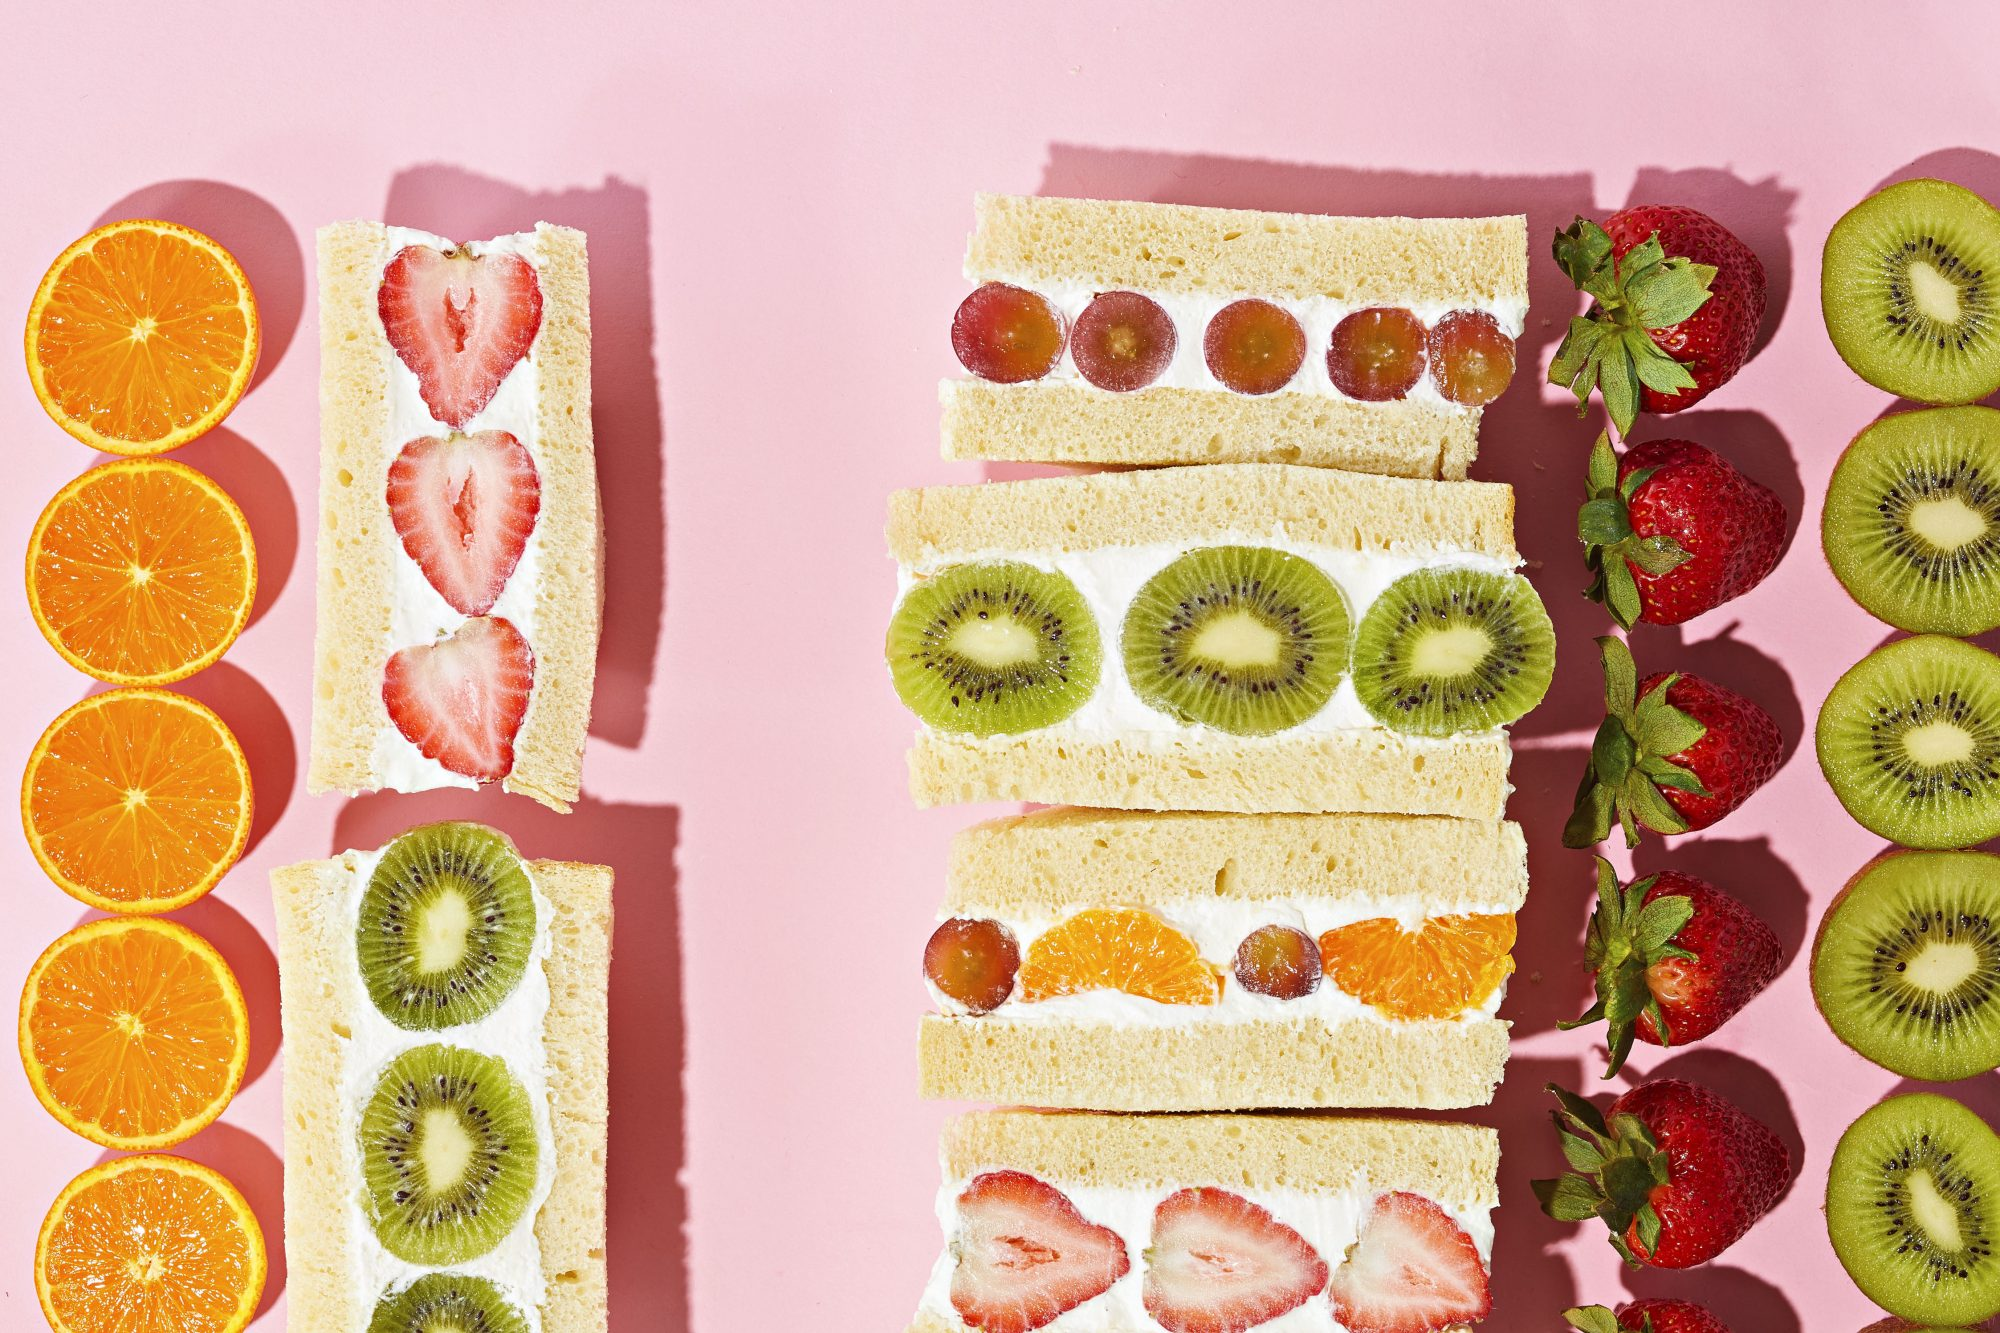 Fruit sandwiches lined up on a pink background.